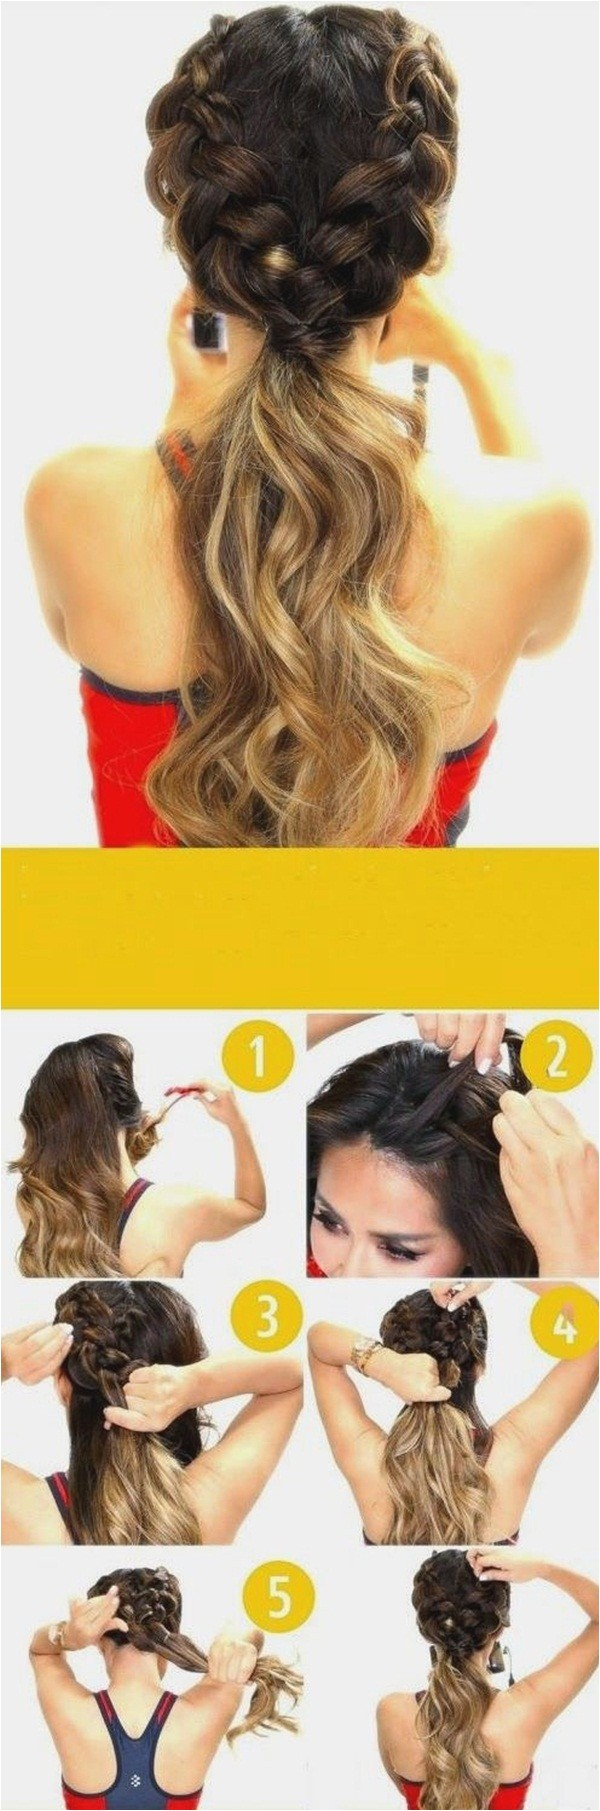 Easy Up Hairstyles for School 40 Easy Hairstyles for Schools to Try In 2016